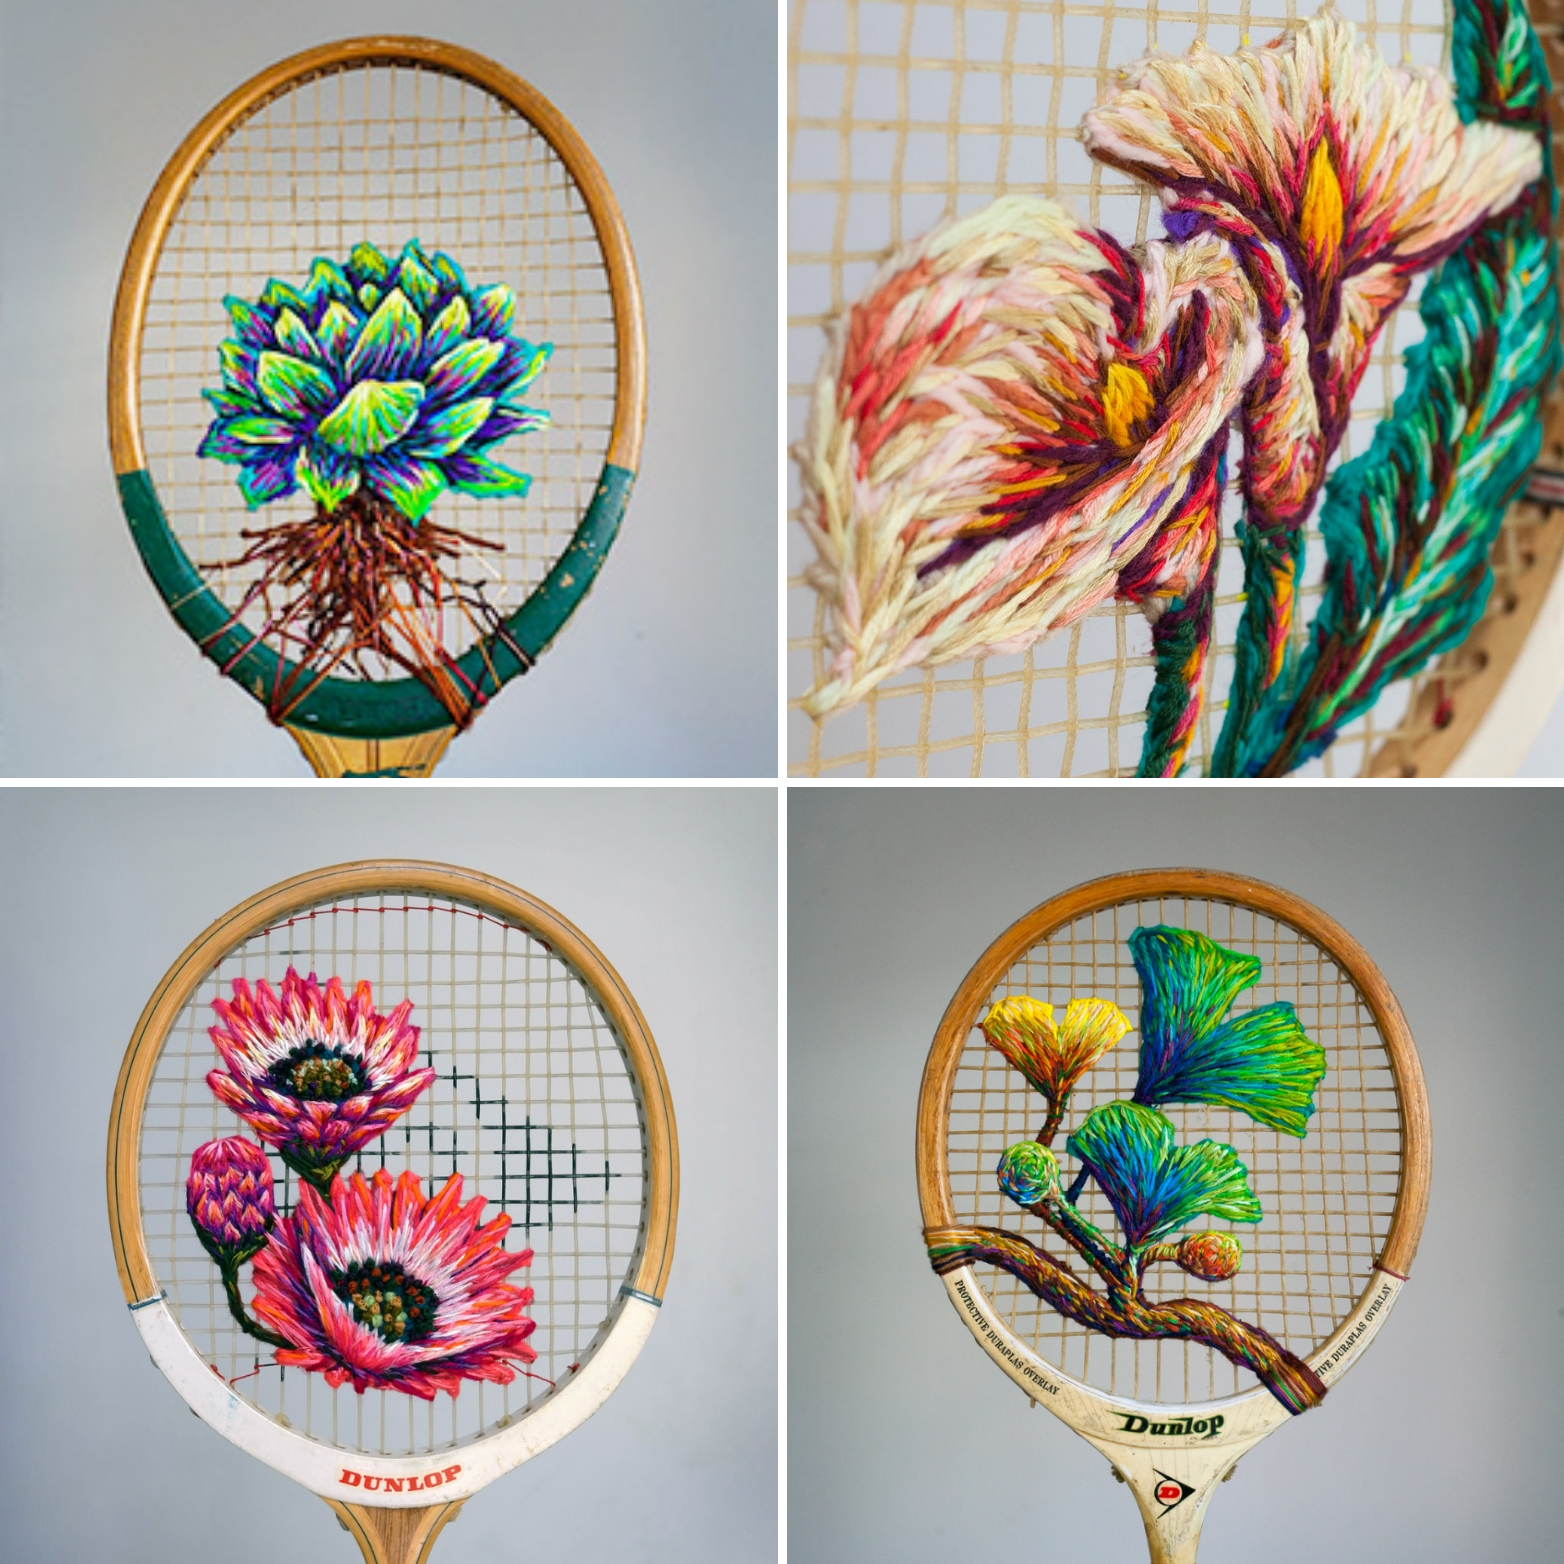 Danielle Clough creates her embroideries on the nets of the rackets